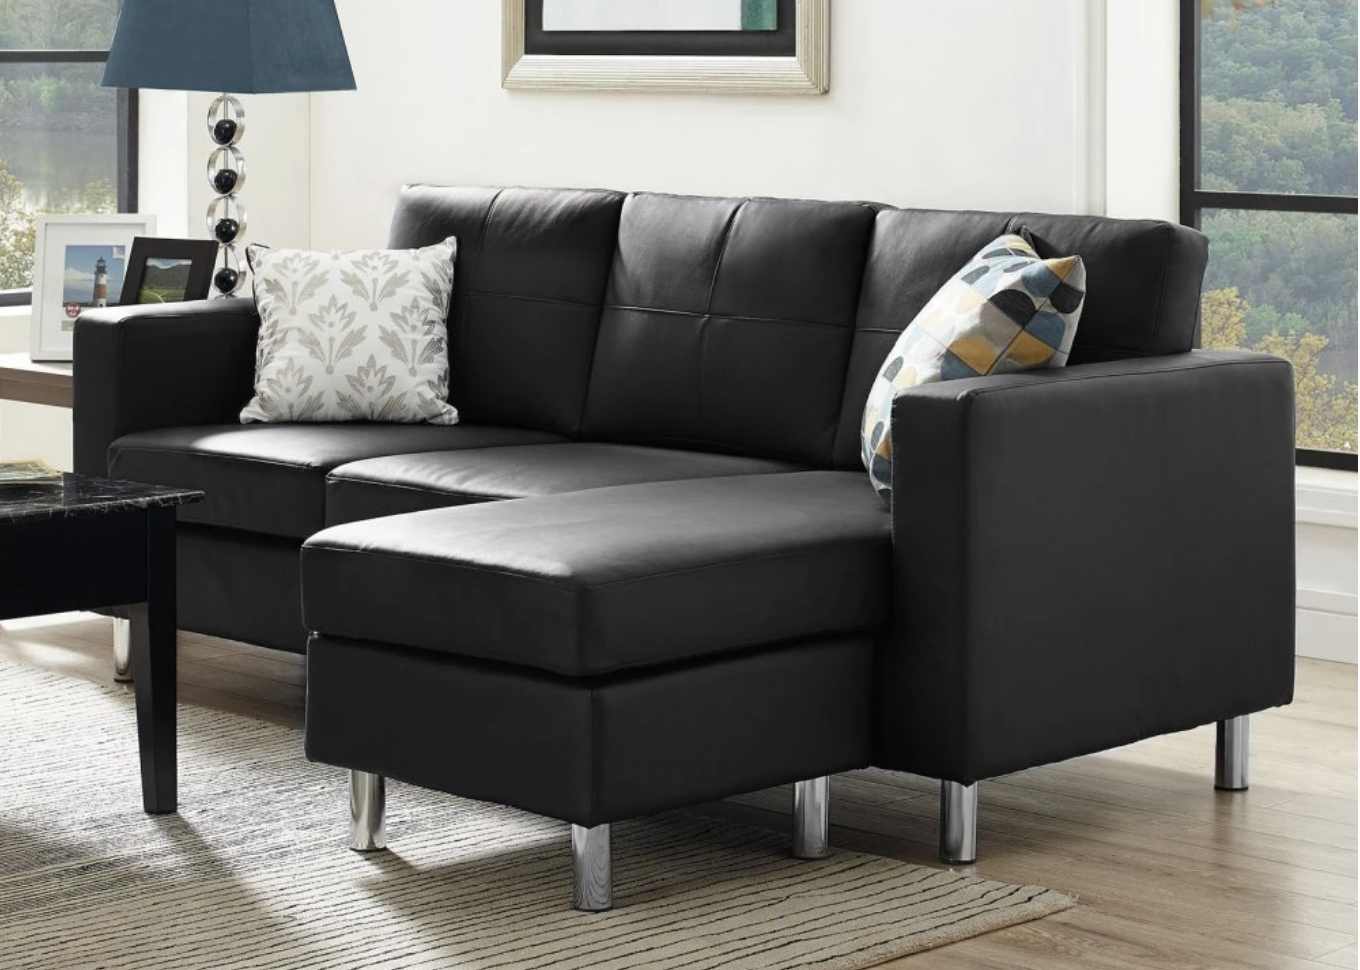 Current Sectional Sofas For Condos With Regard To 75 Modern Sectional Sofas For Small Spaces (2018) (View 15 of 20)